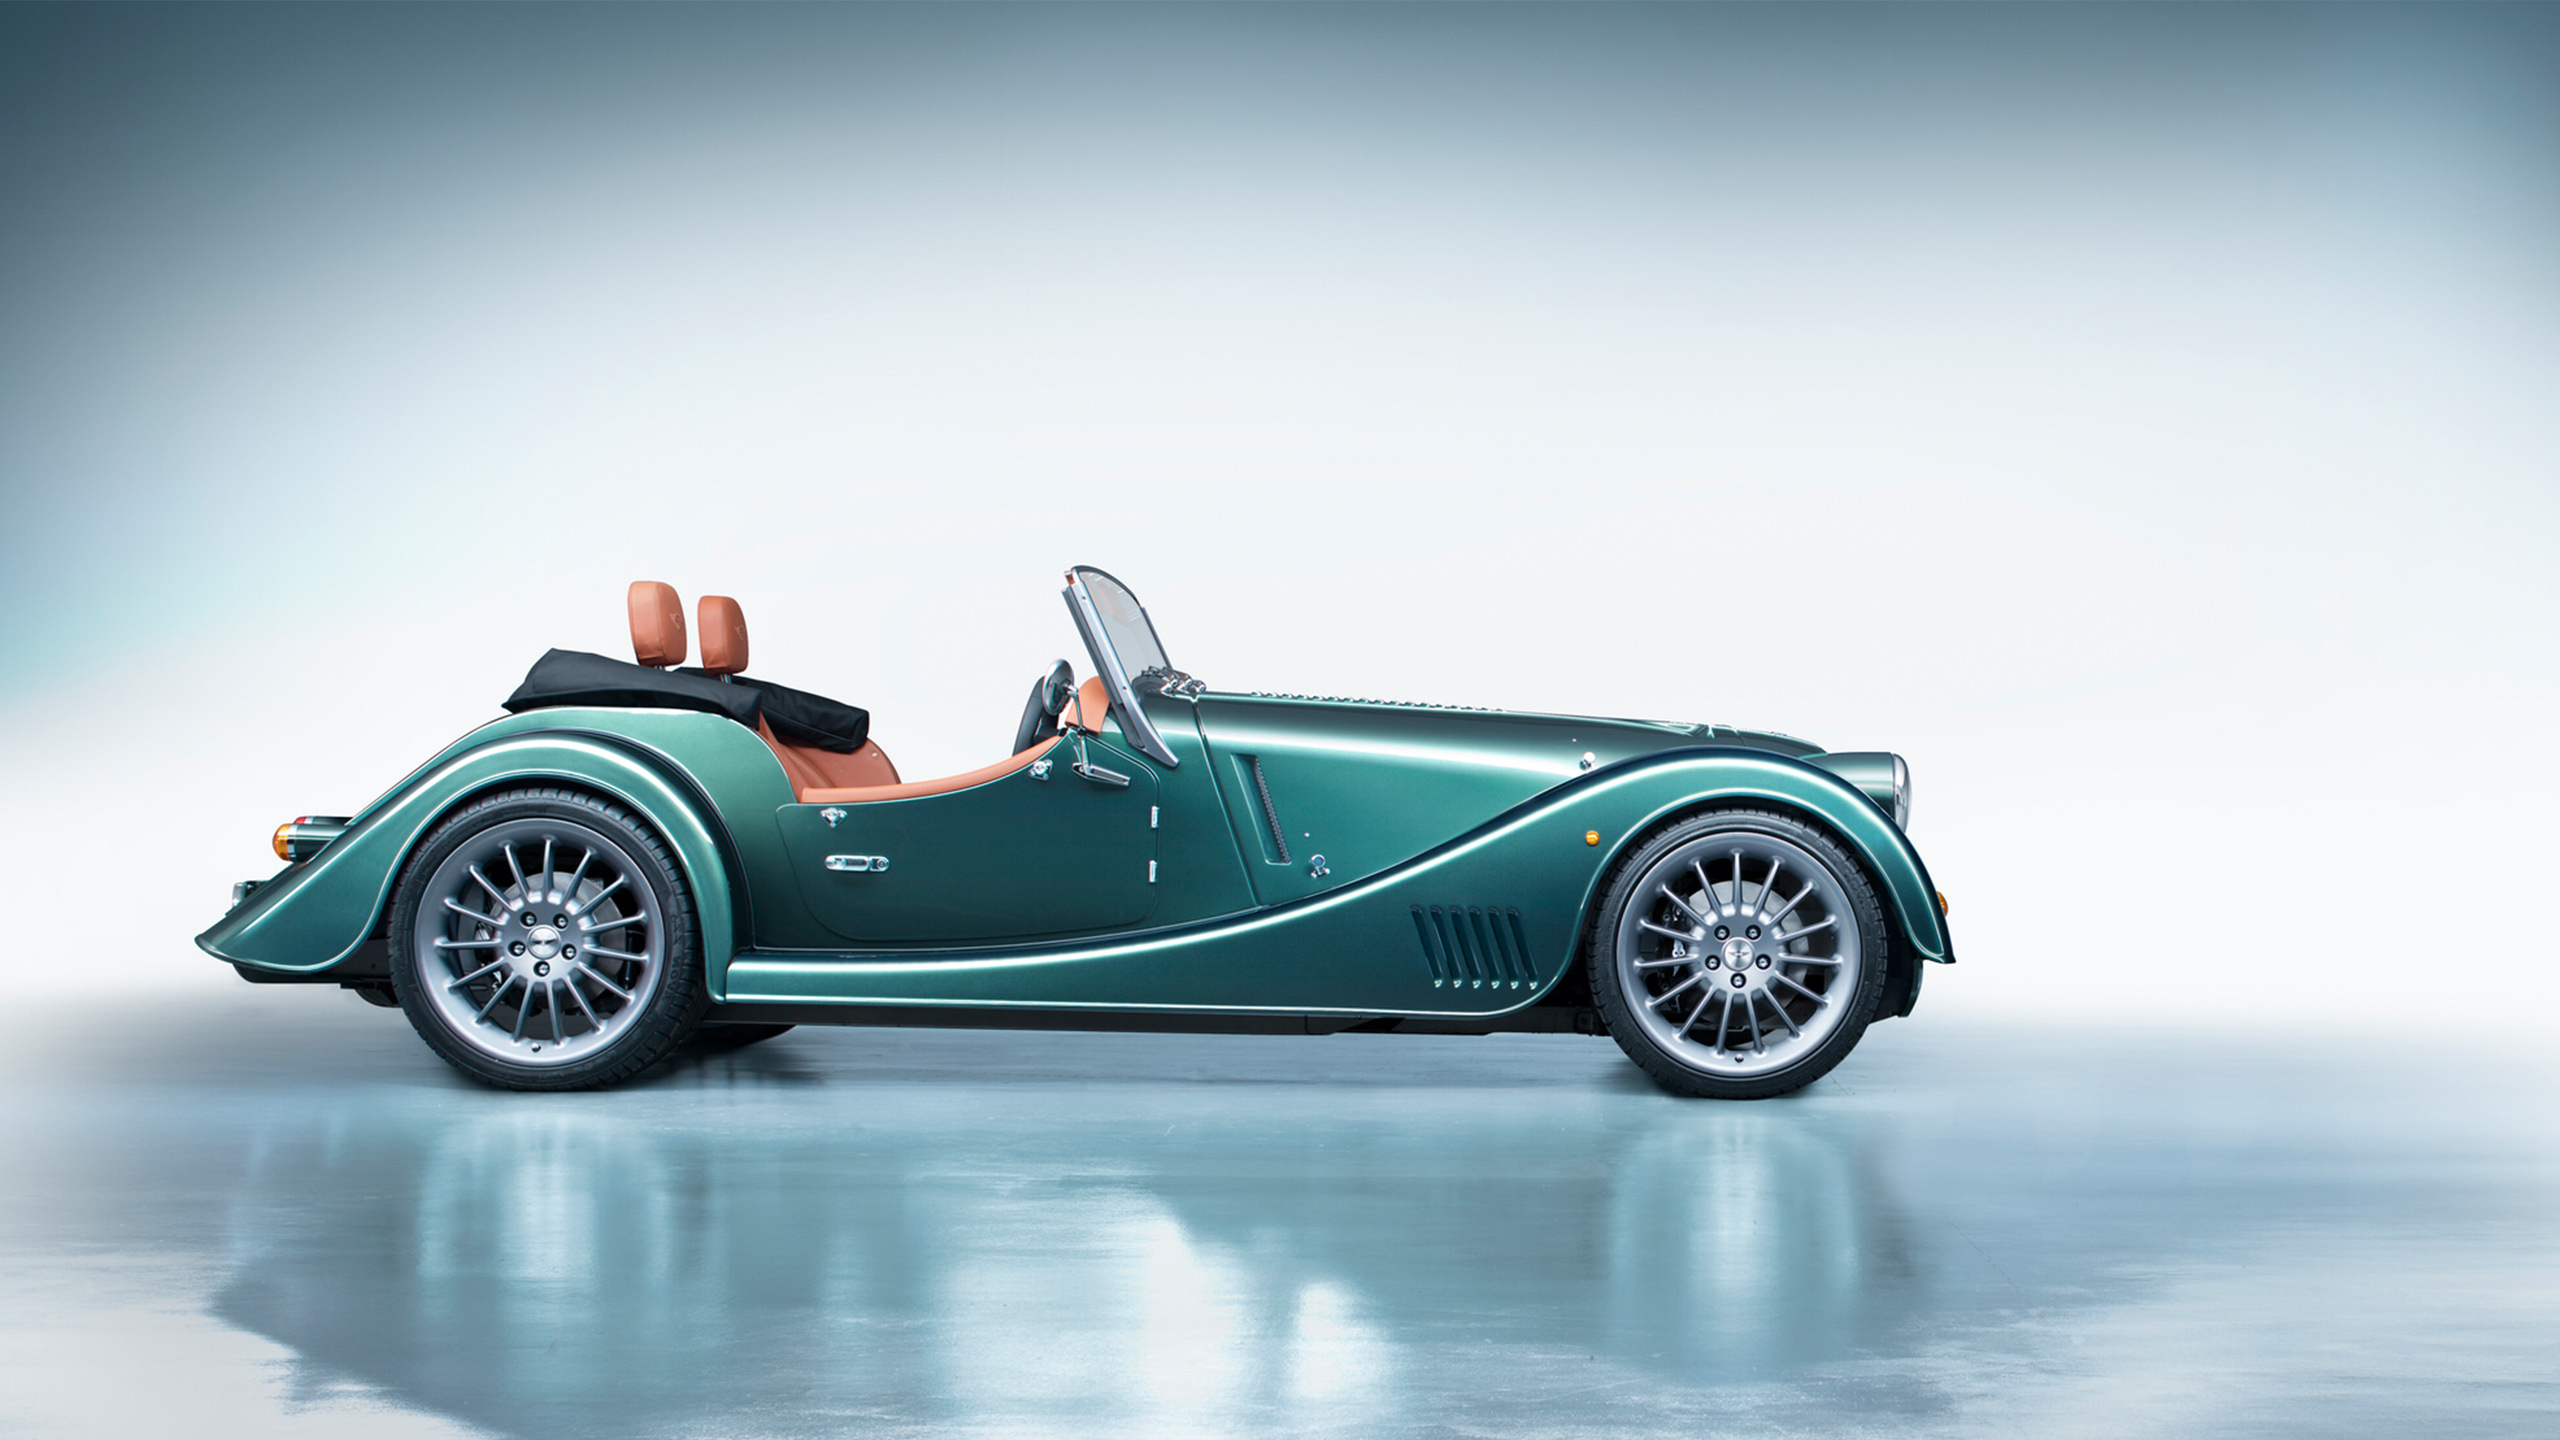 Morgan Plus Six Jamesedition is the luxury marketplace to find new and preowned luxury, exotic and classic cars for sale. morgan plus six